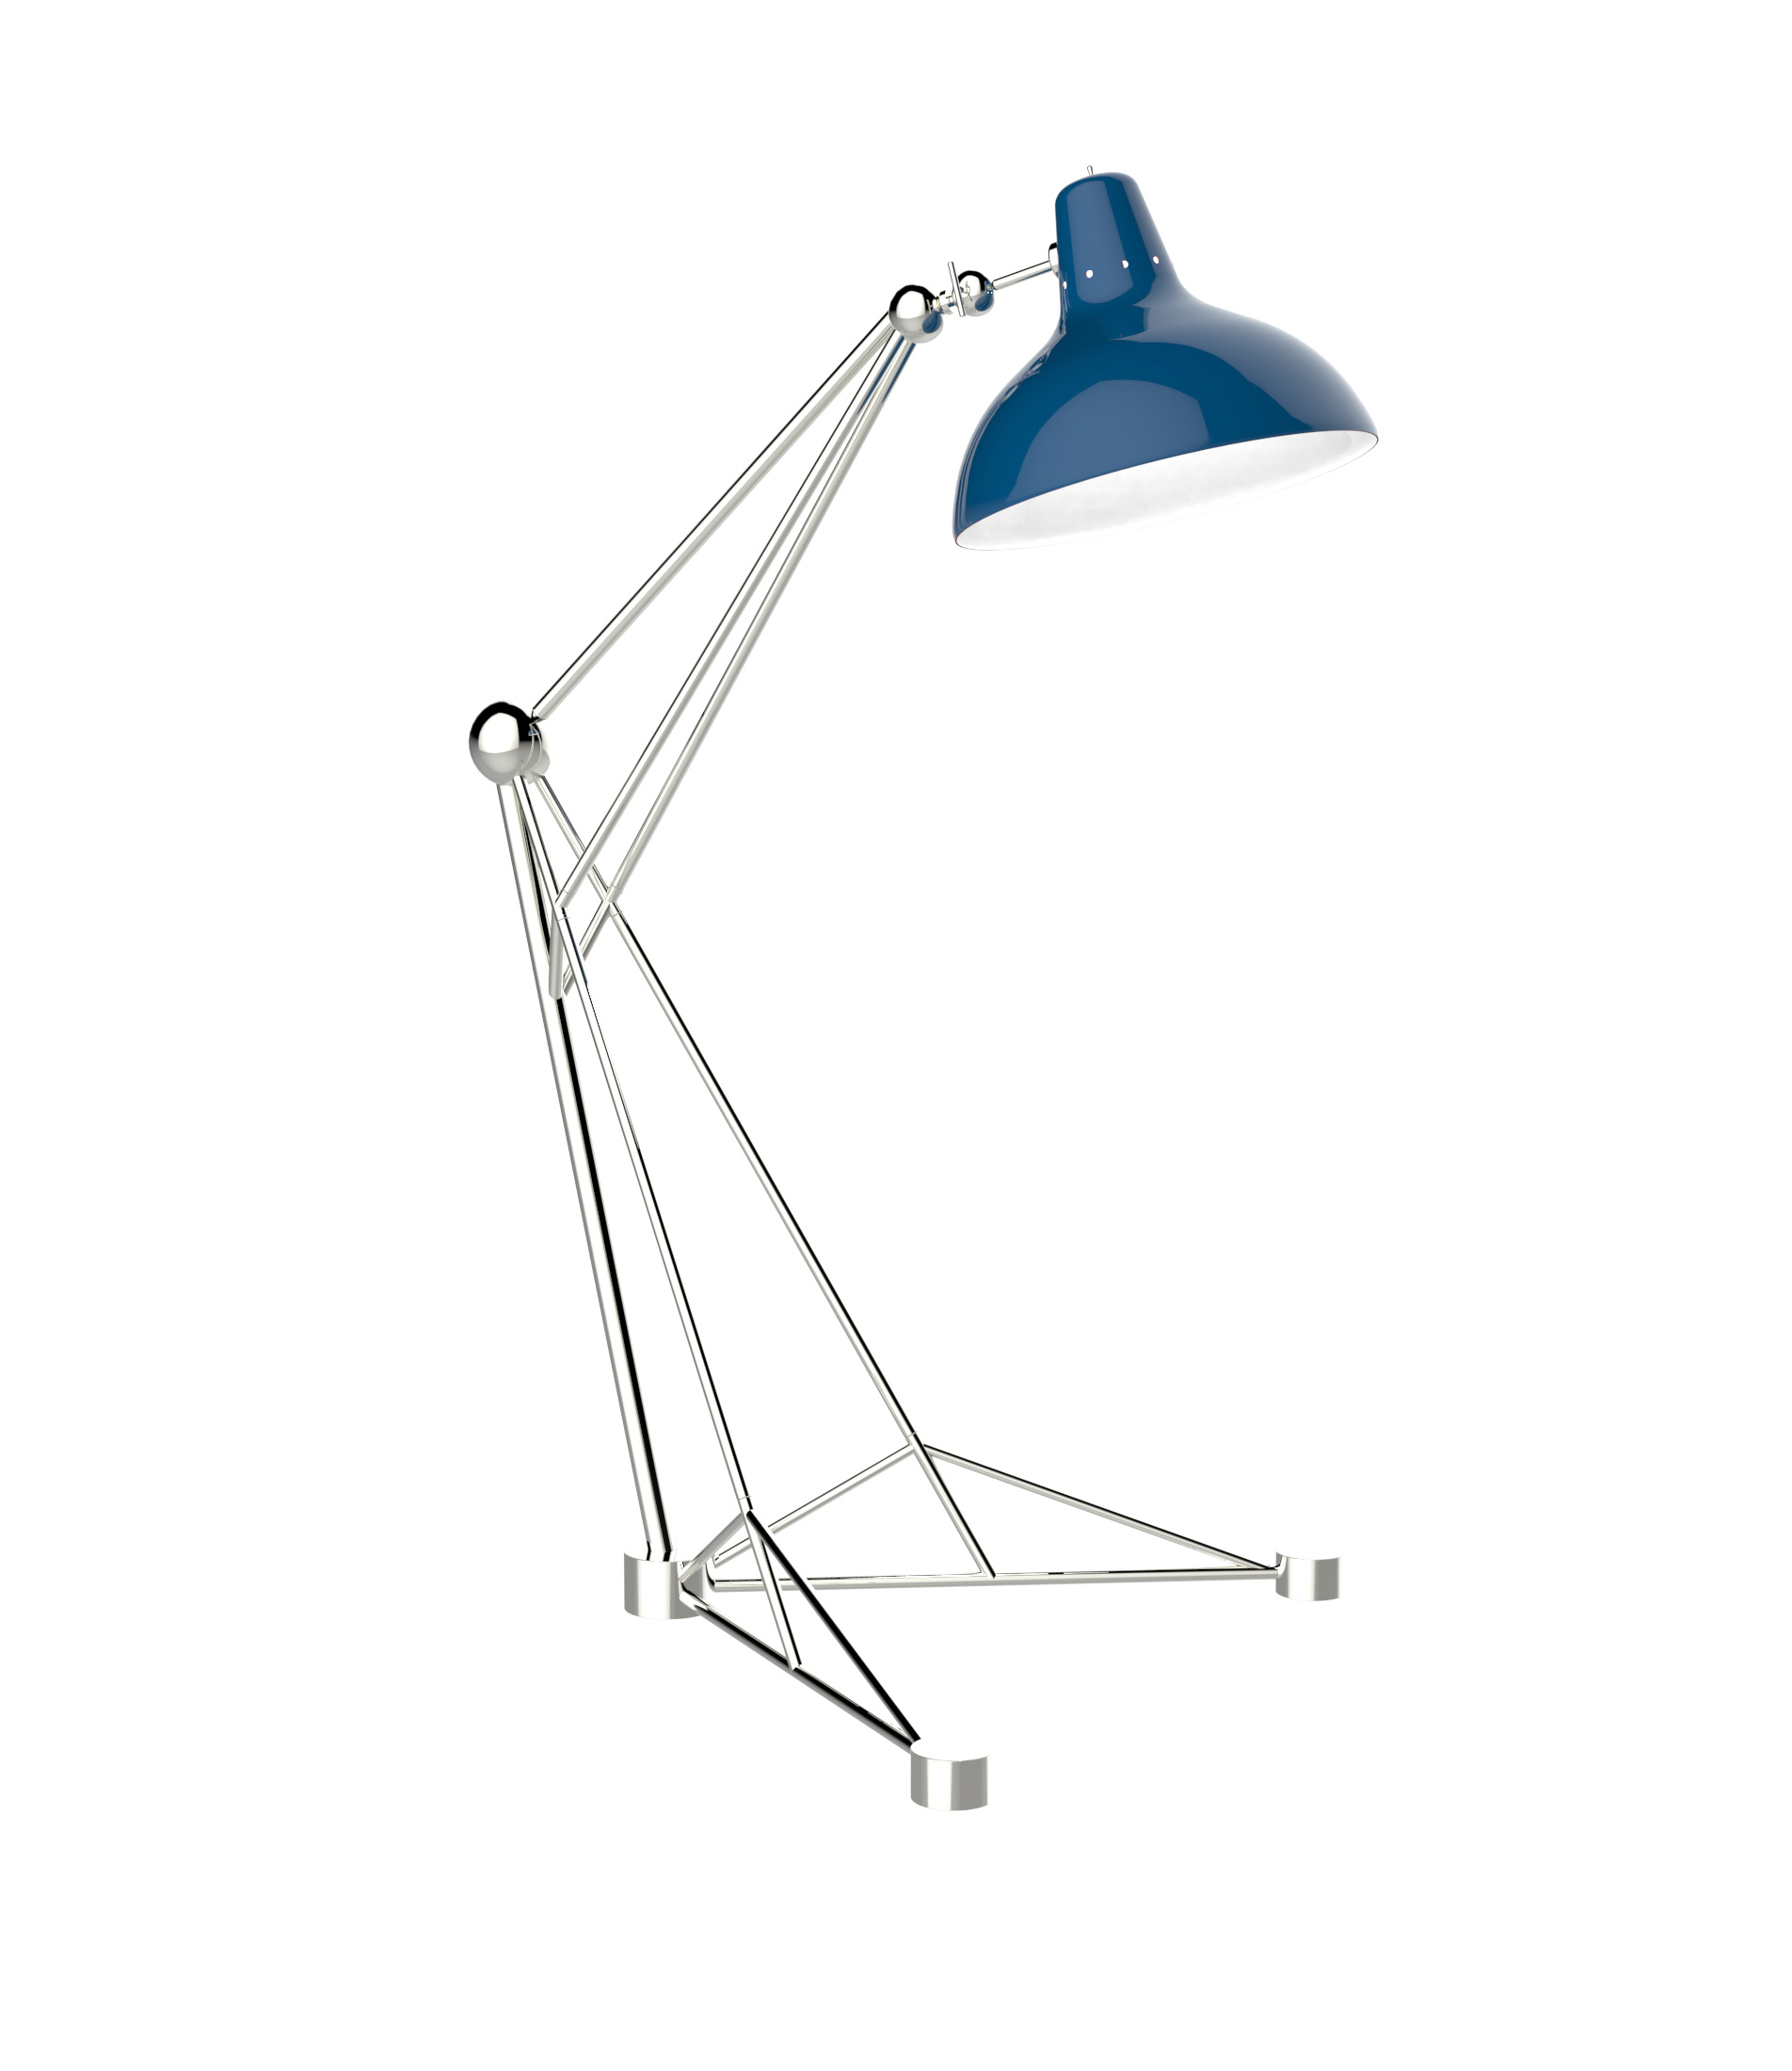 Floor Lamps Essentials Anglepoise Industrial Floor Lamps 7  Floor Lamps Essentials: Anglepoise Industrial Floor Lamps Floor Lamps Essentials Anglepoise Industrial Floor Lamps 7